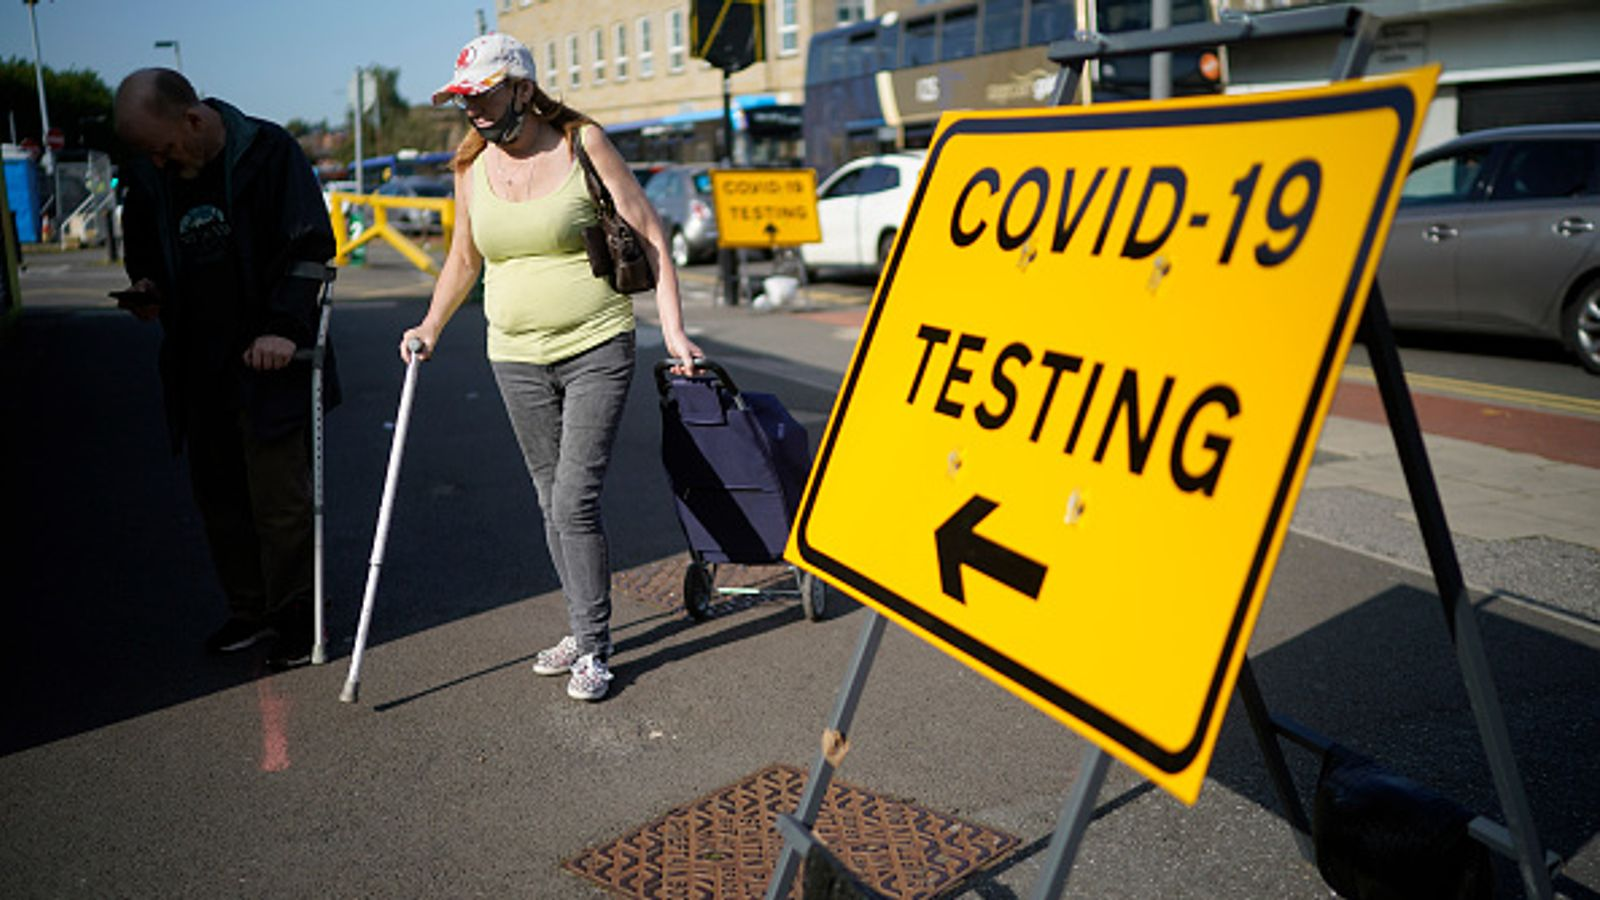 Coronavirus Thousands Of Rapid Covid 19 Tests To Be Sent To Local Authorities This Week Uk News Sky News